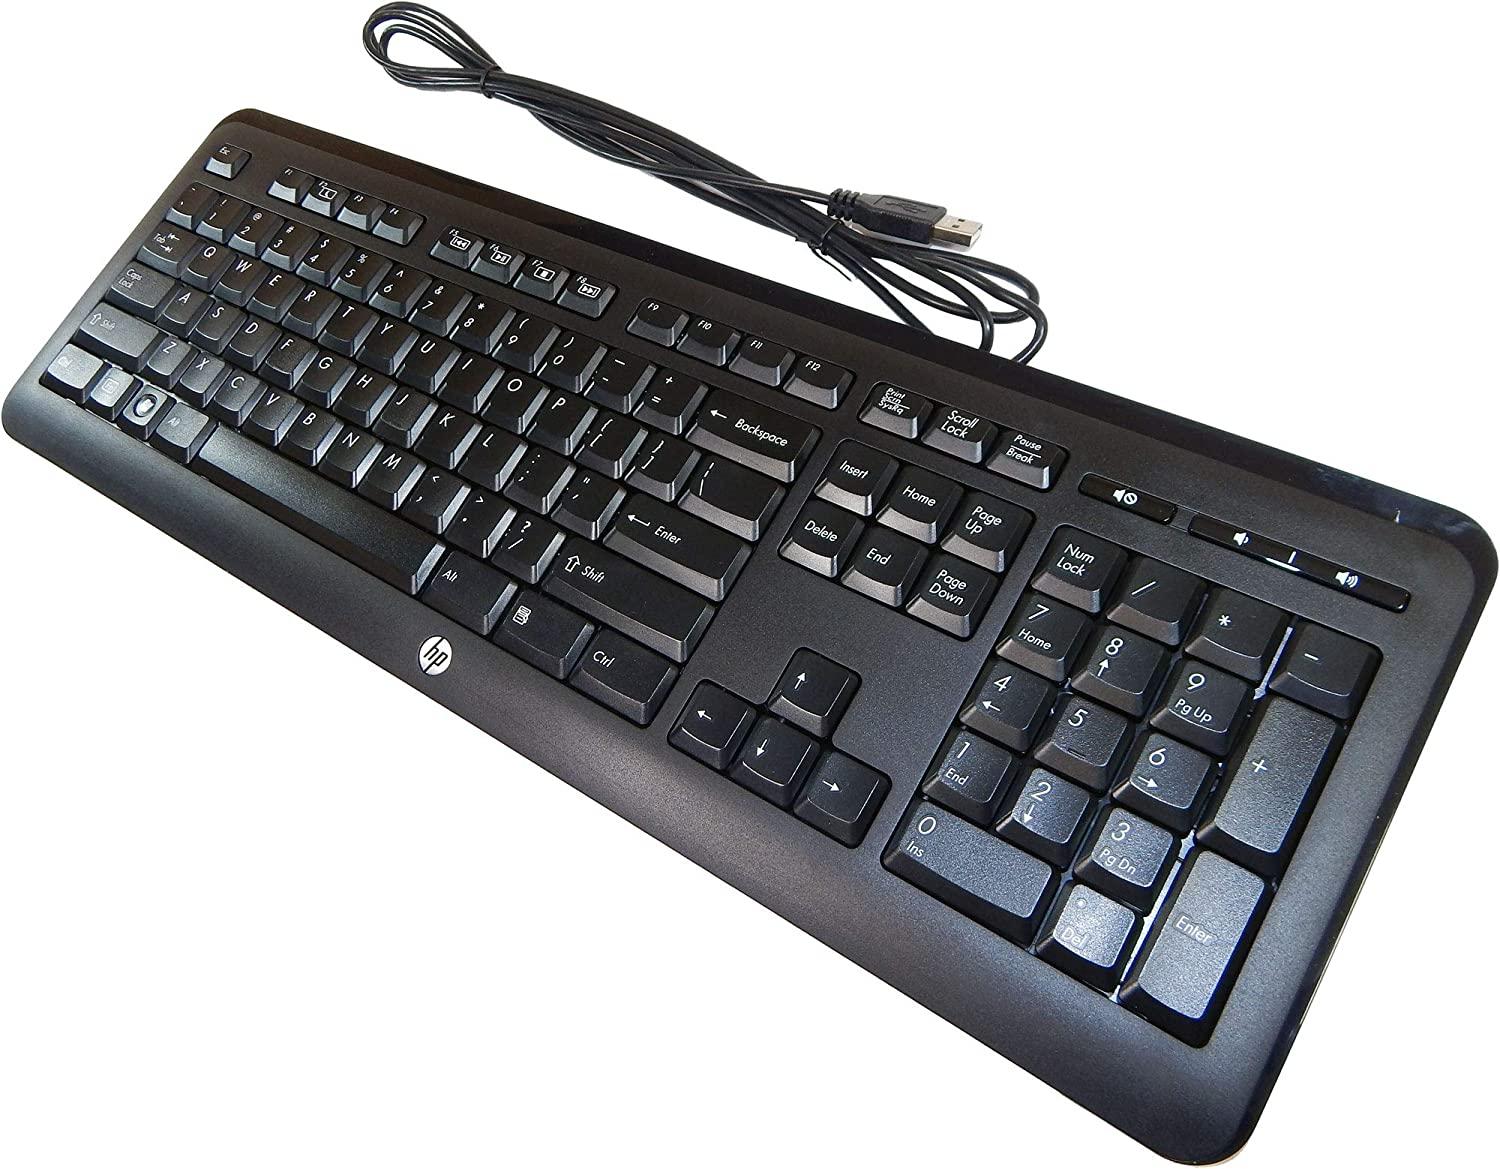 HP Jade USB Wired US English Keyboard 643691-001 KU-1060